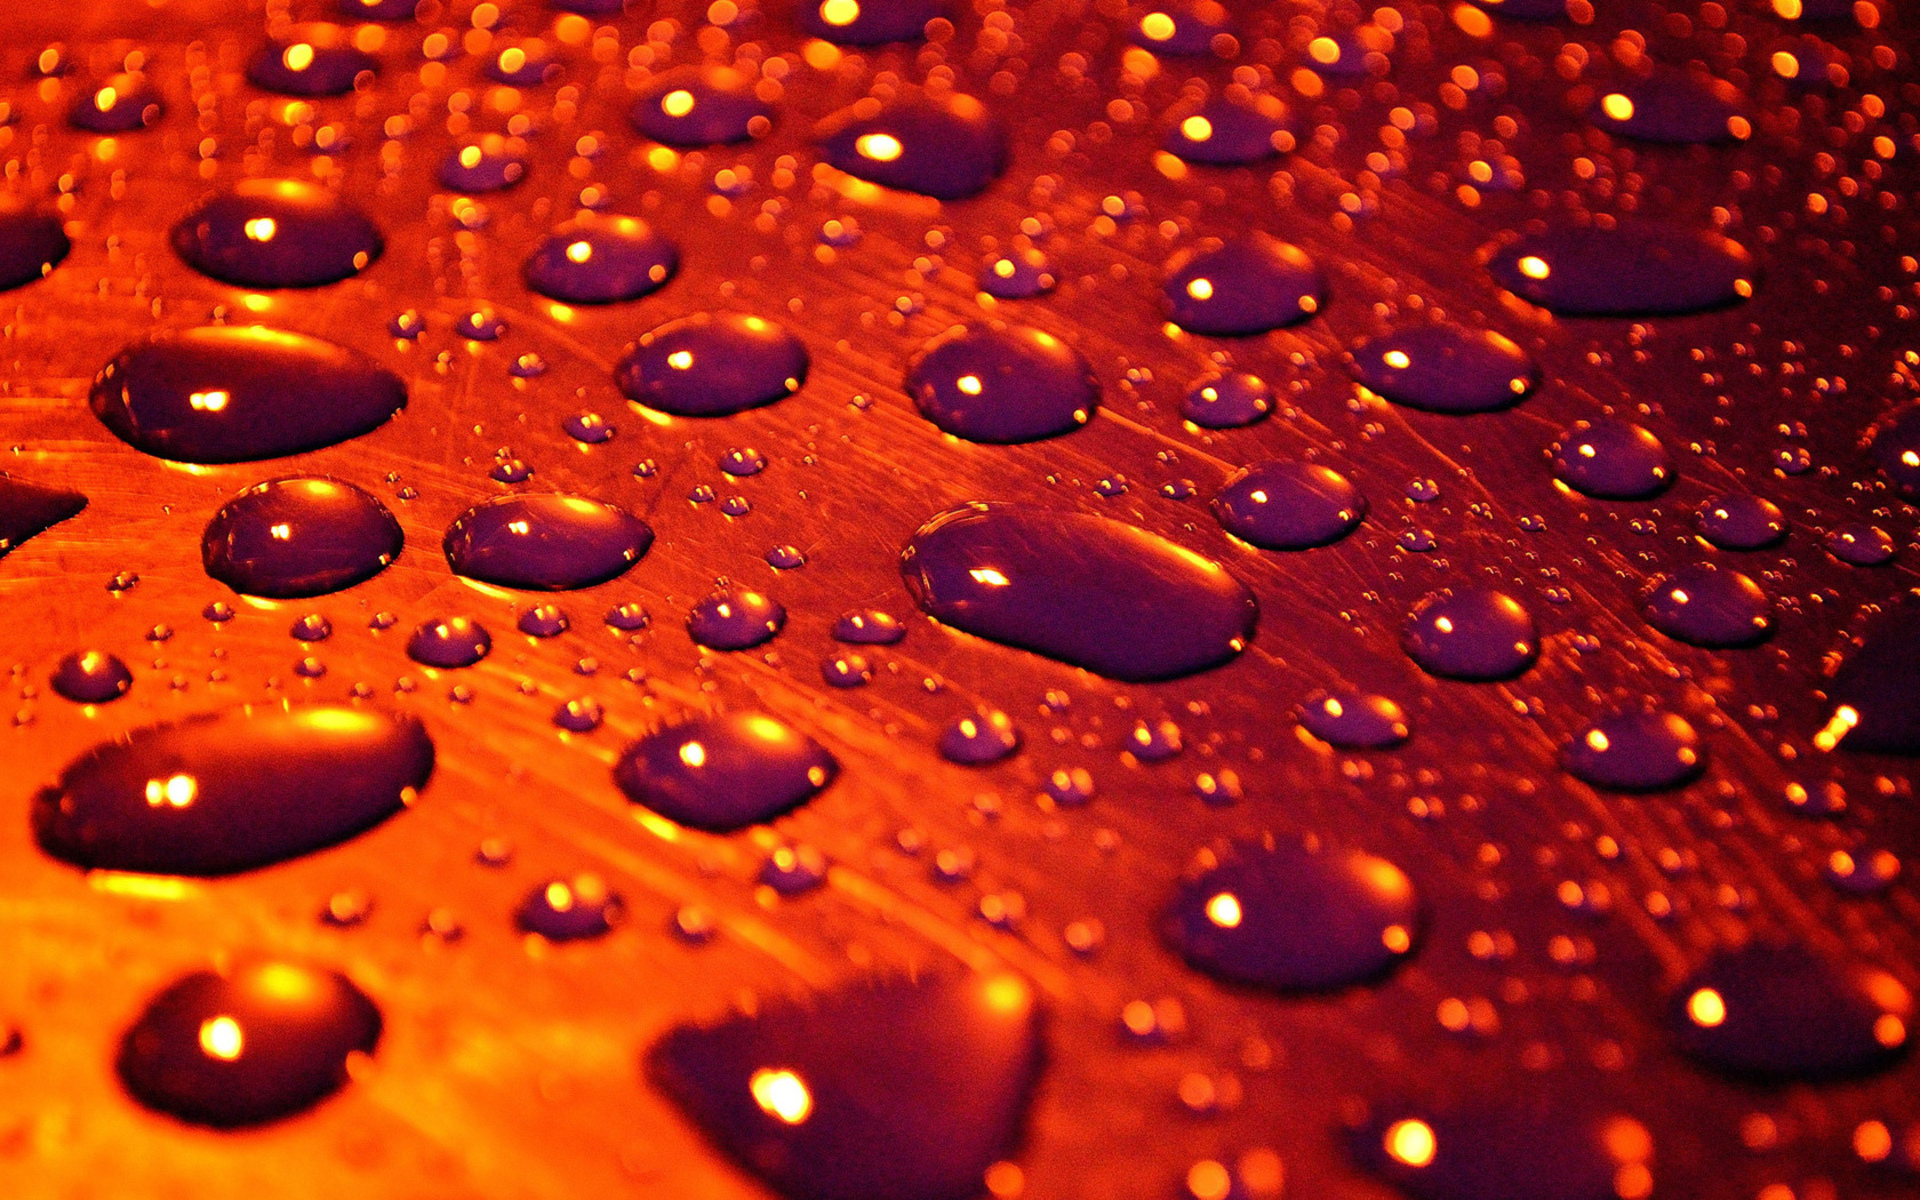 orange 3d wallpaper with many water drops